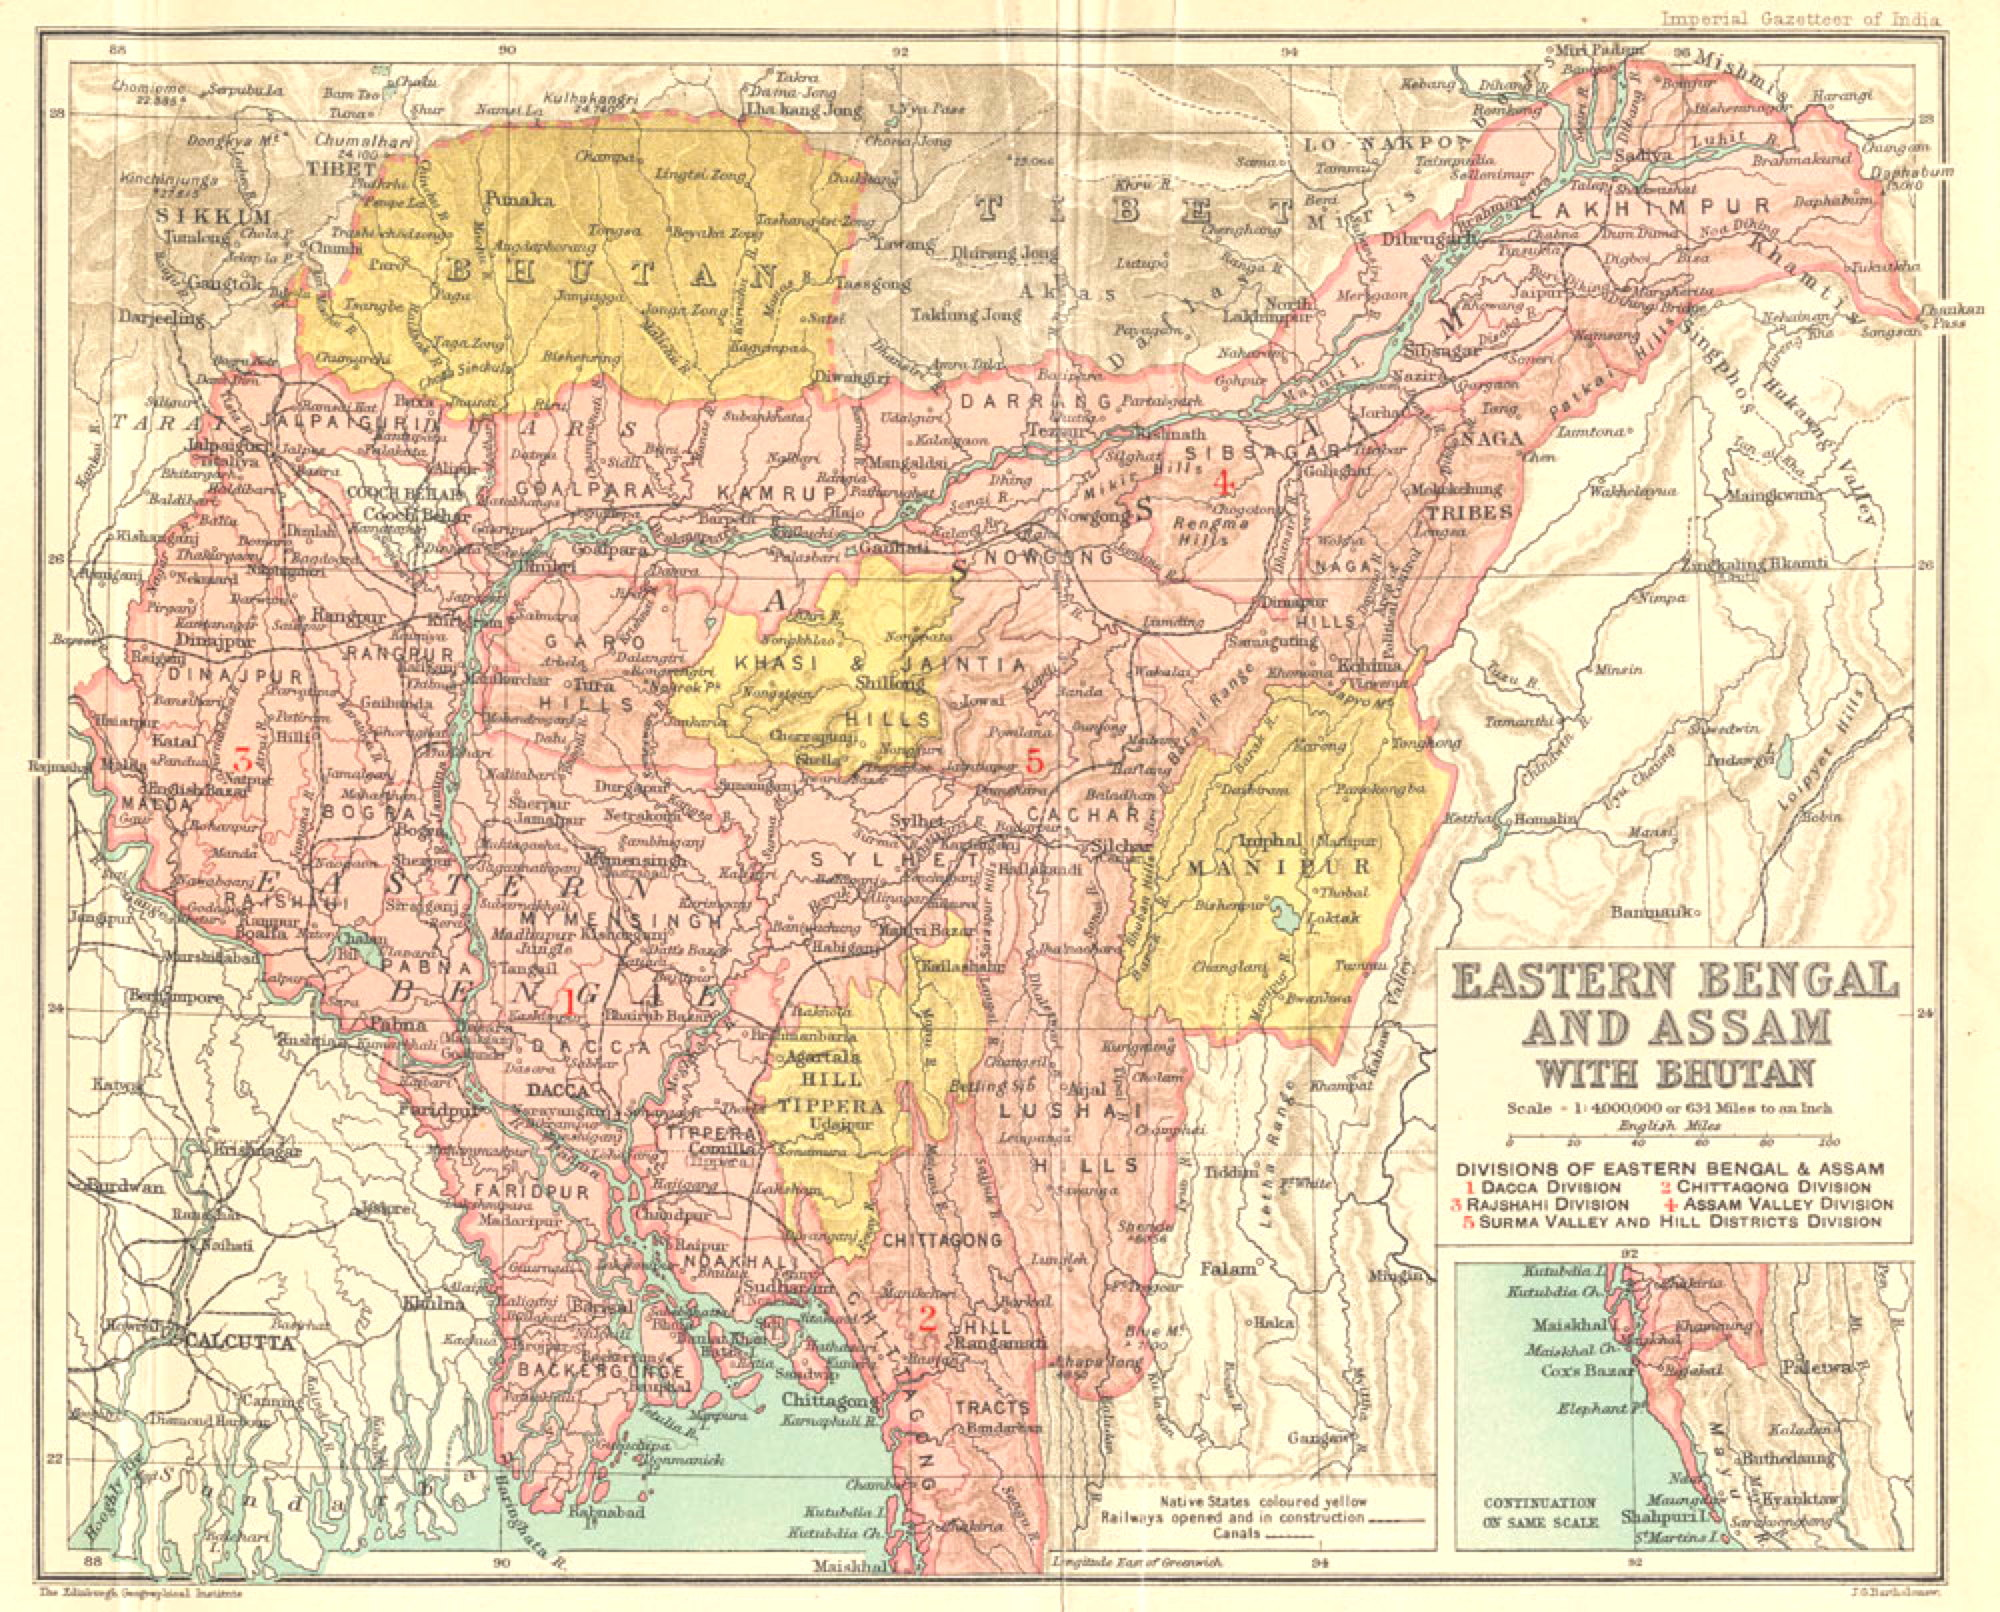 Map of Eastern Bengal and Assam with Bhutan - Imperial Gazetteer of India